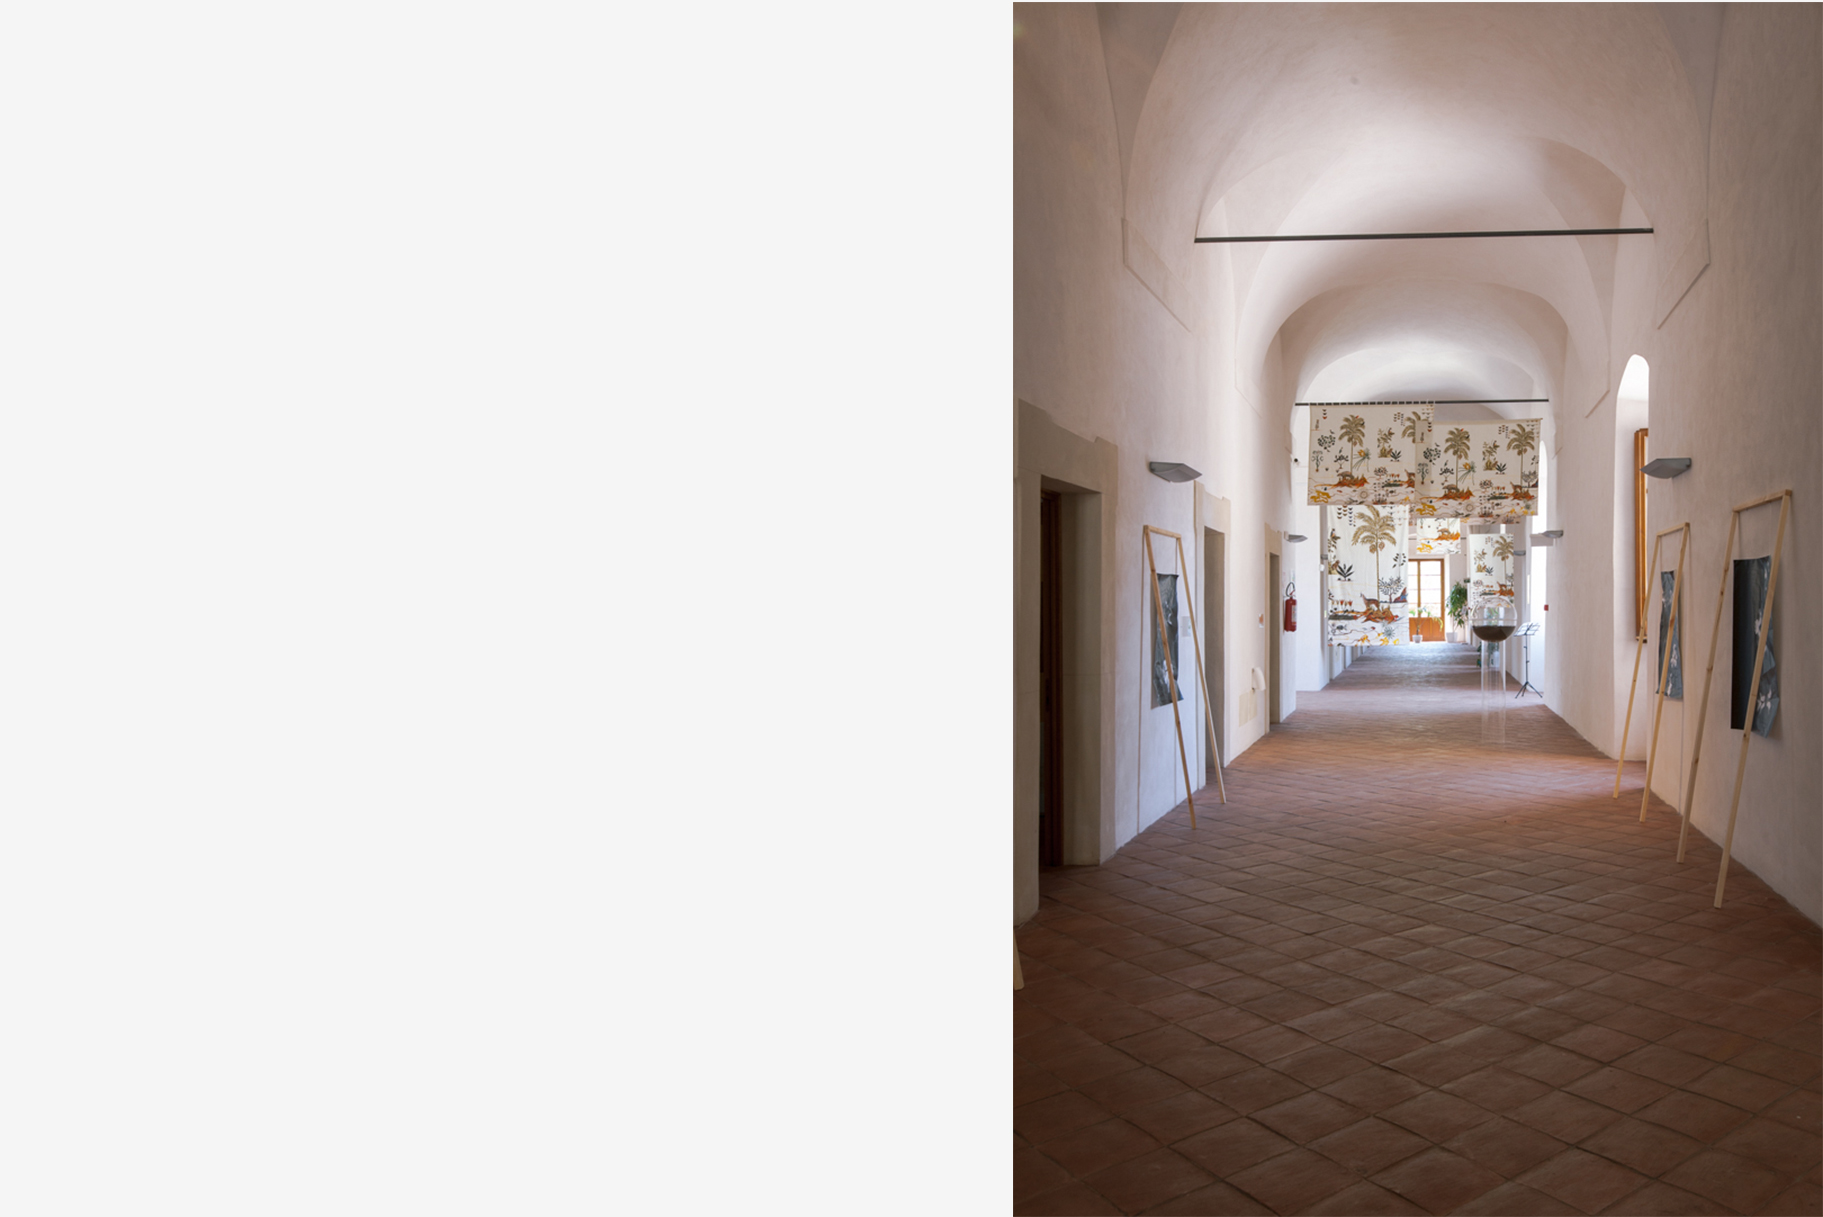 Hortus (in)conclusus, exhibition view. Photo CAVE Studio